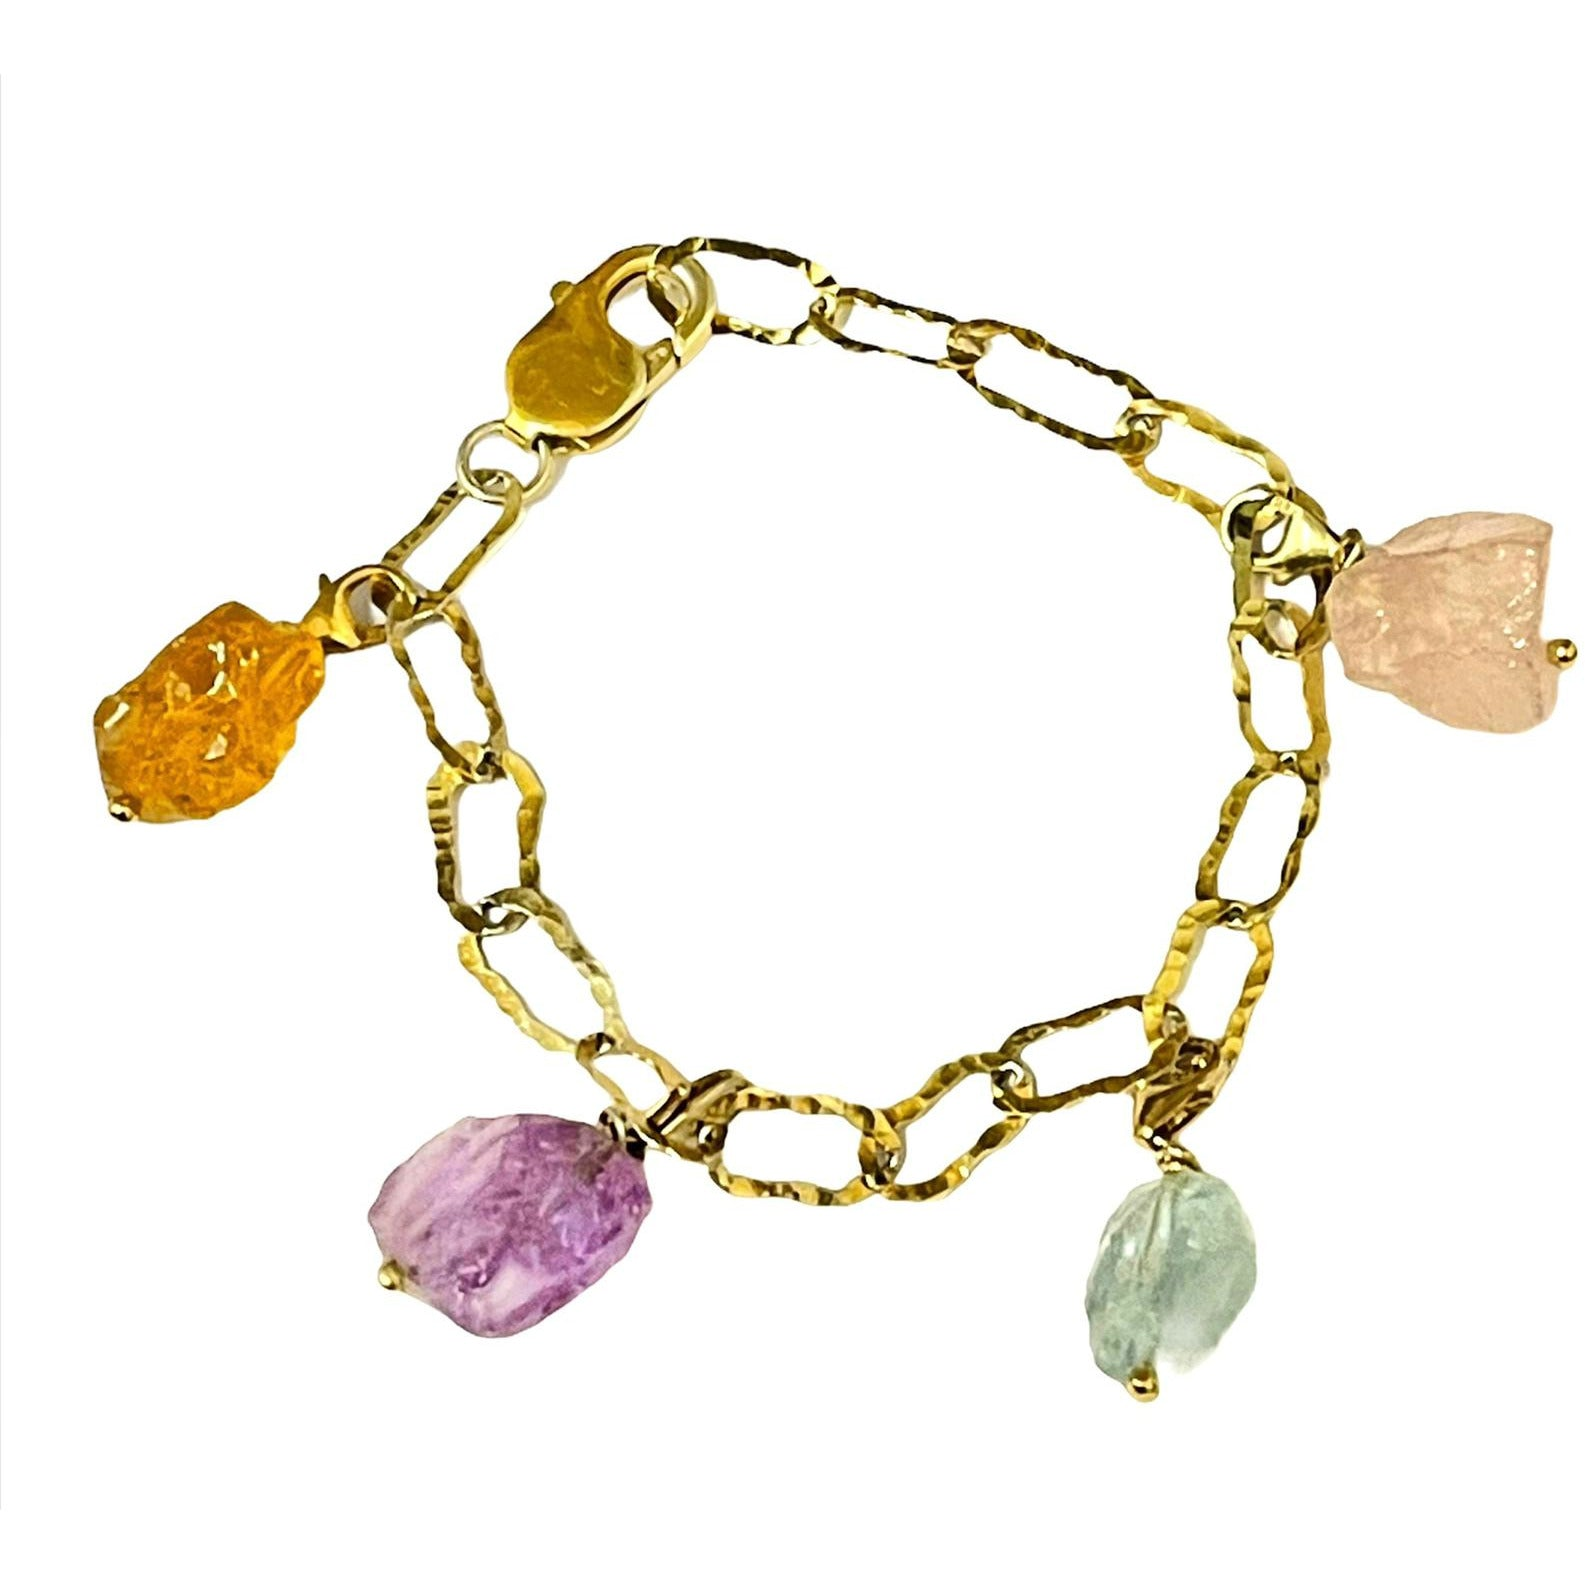 Petra Charm Link Chain Bracelet with rough raw crystal stones 24K gold plating over 925 Recycled Silver, Made to order, 10 days lead time - natoorio